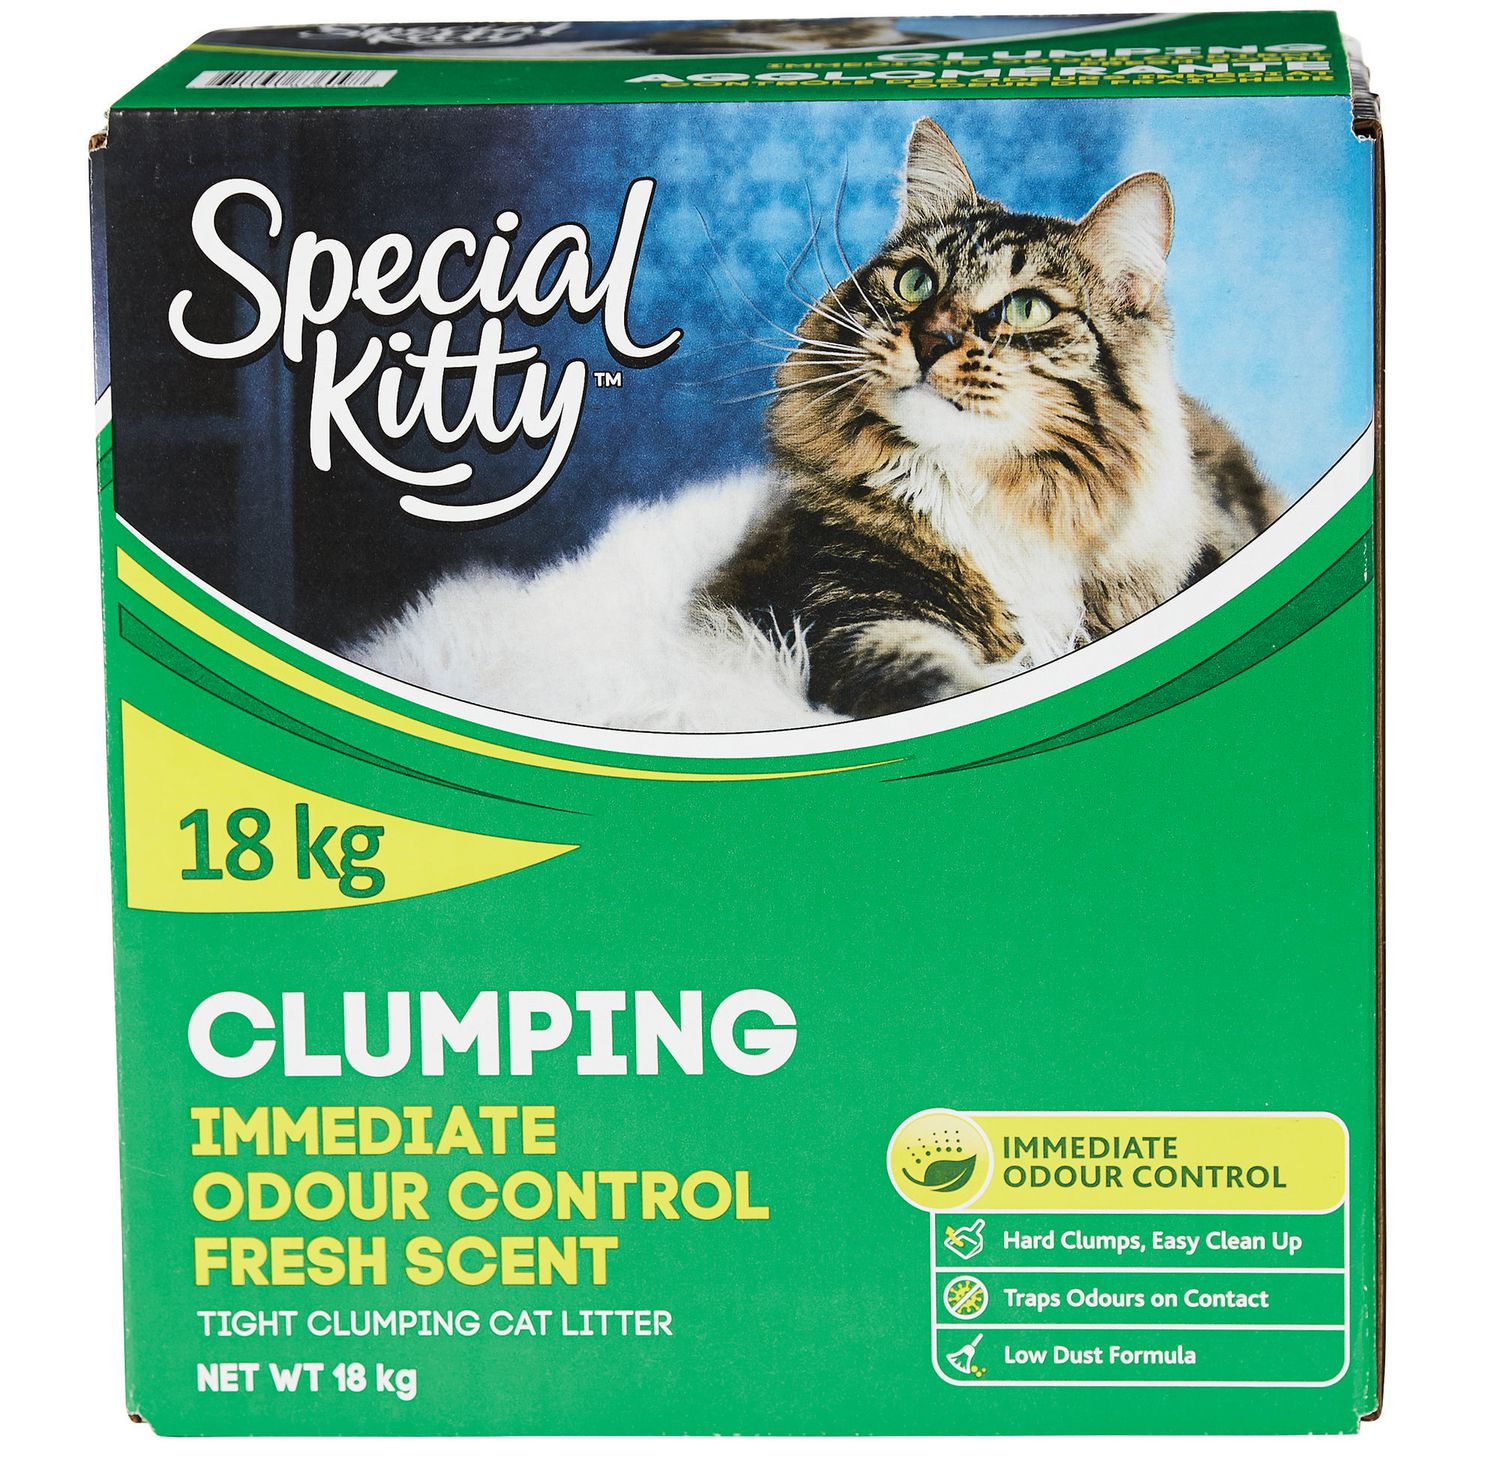 Special Kitty Clumping Immediate Odour Control Fresh Scent Cat